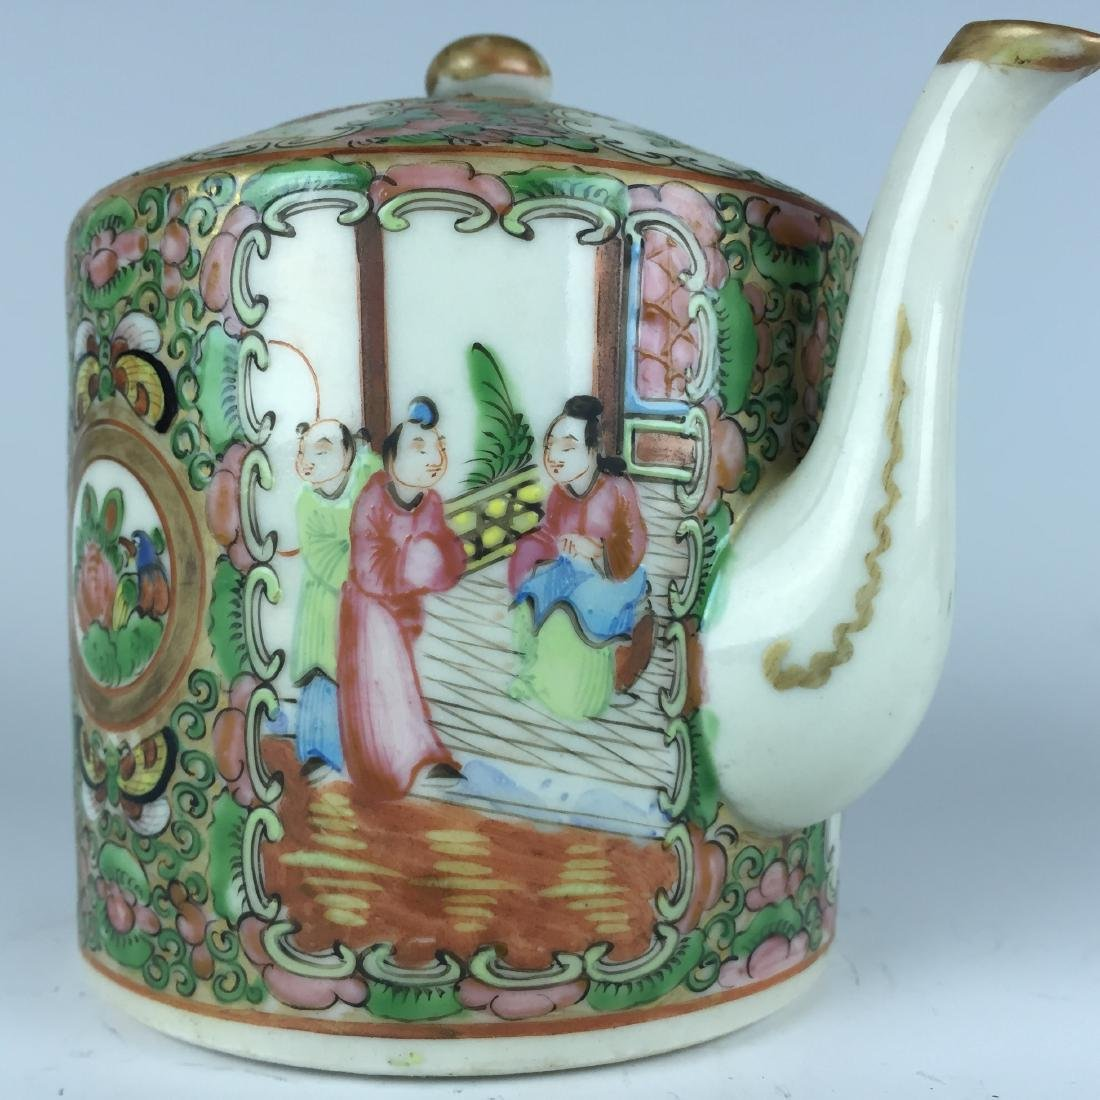 Chinese Canton Enamel Porcelain Tea Pot - People - 2